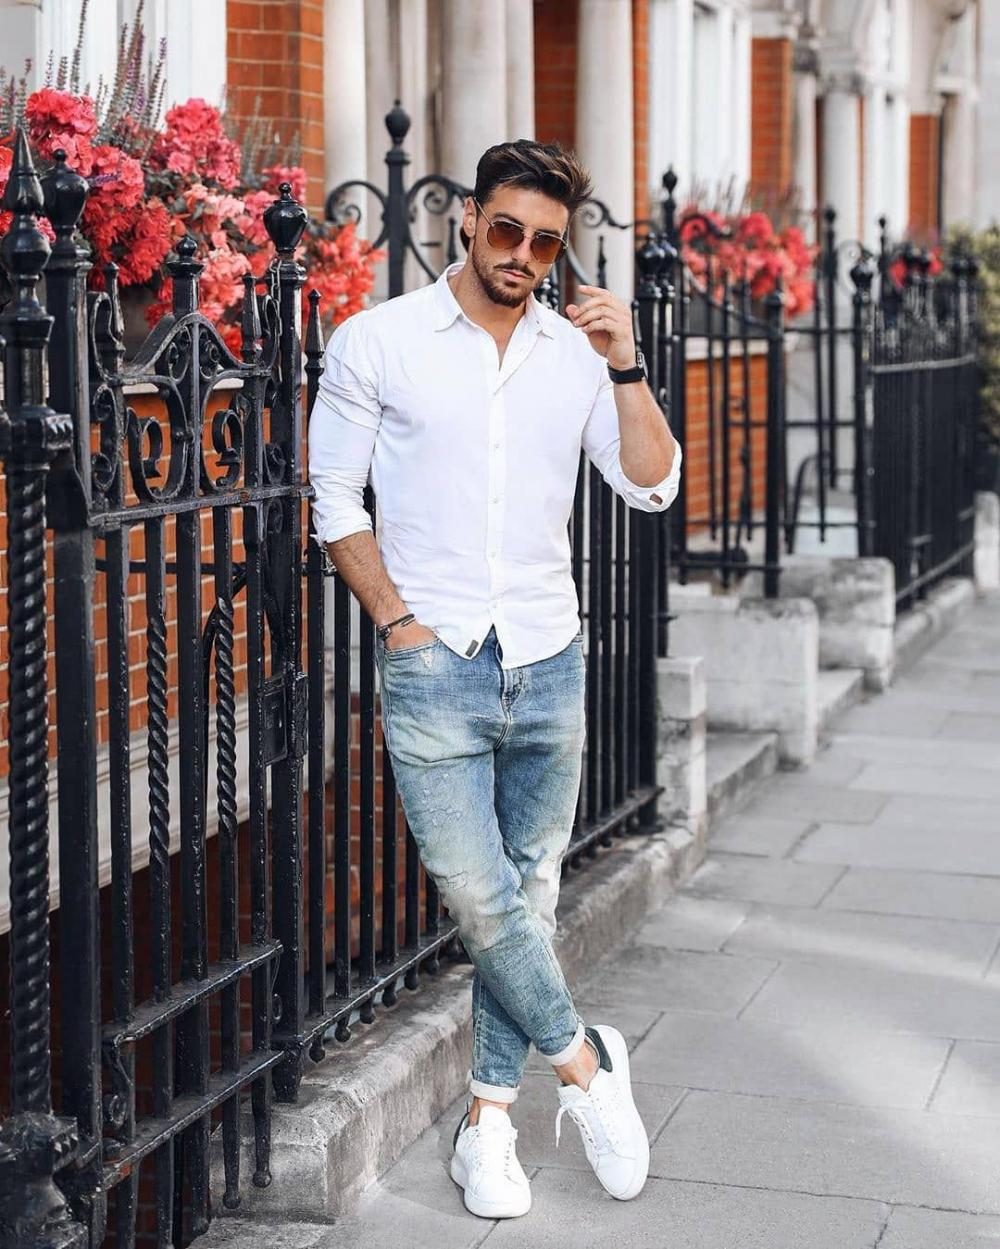 The best stylish outfits for casual business looks from the most fashionable instagram influencers